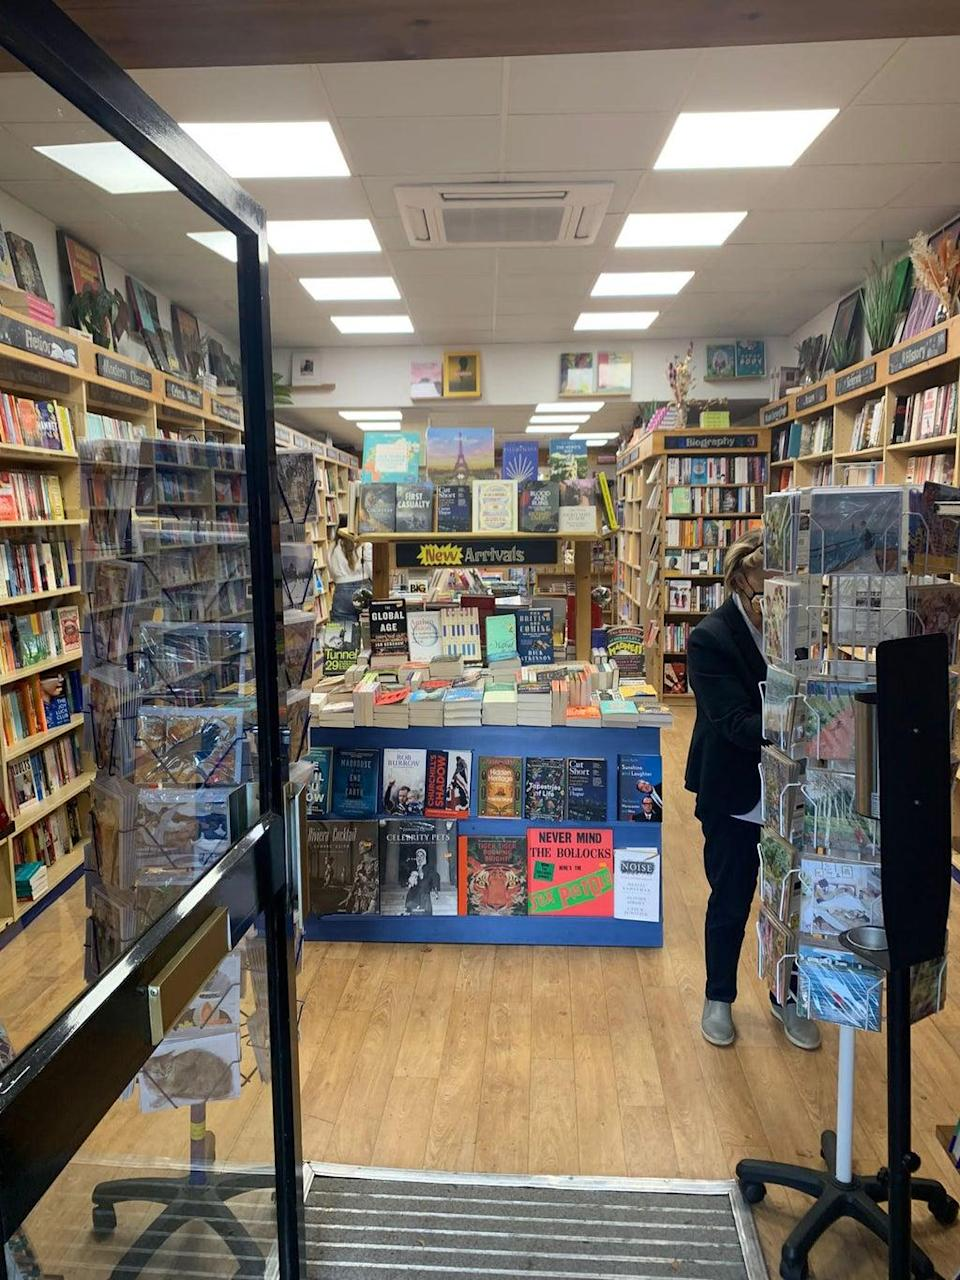 One of the businesses seeing people come in to spend vouchers is independent bookshop Bookcase, which has been in operation in Chiswick since 1993  (Bookcase)